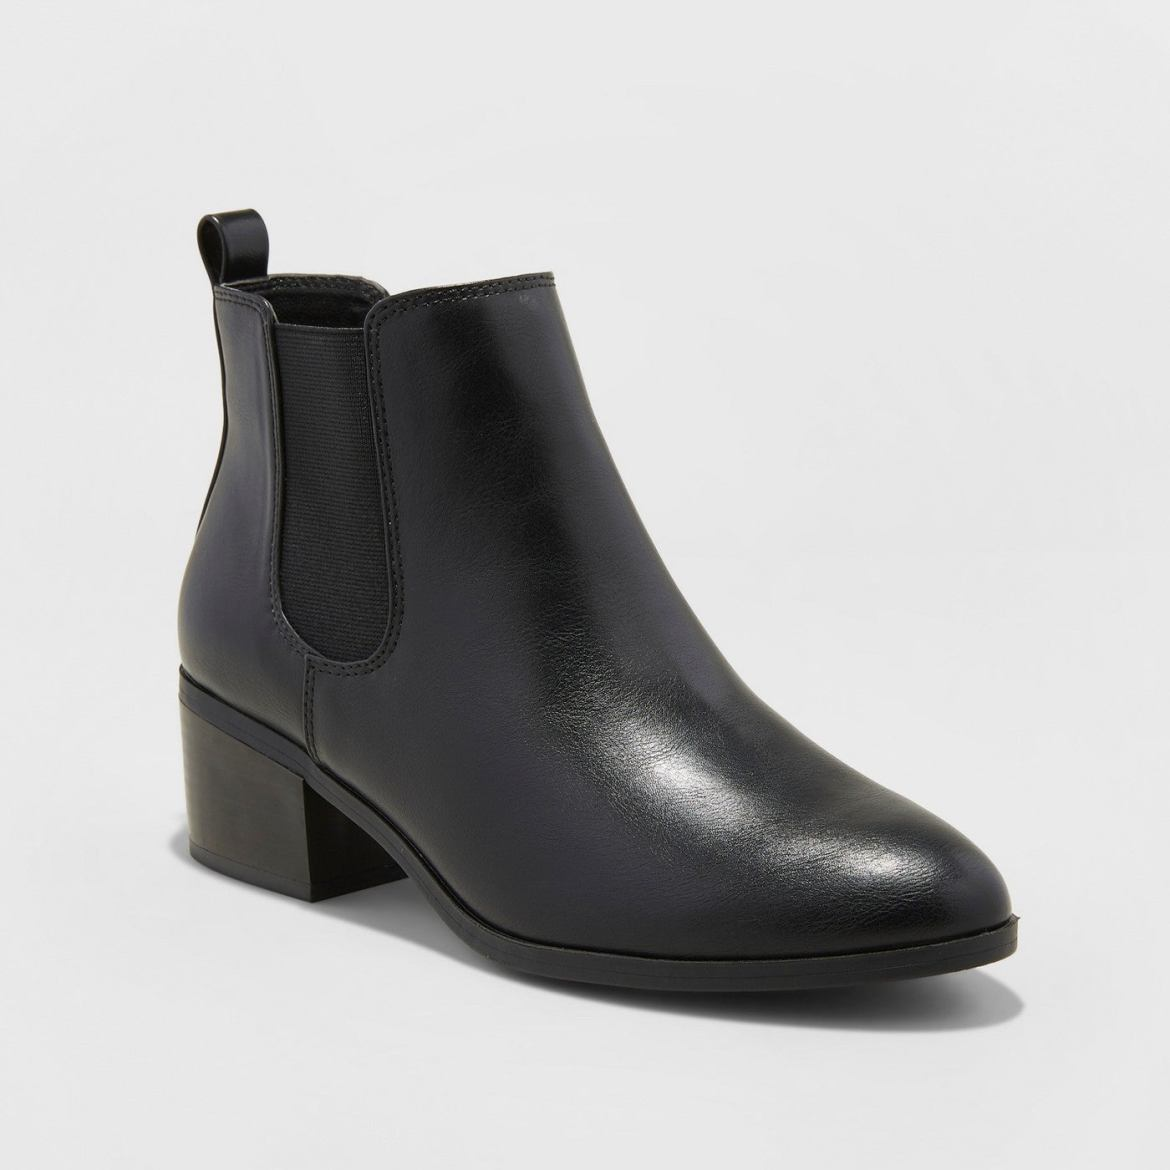 Image result for ellie chelsea boots a new day